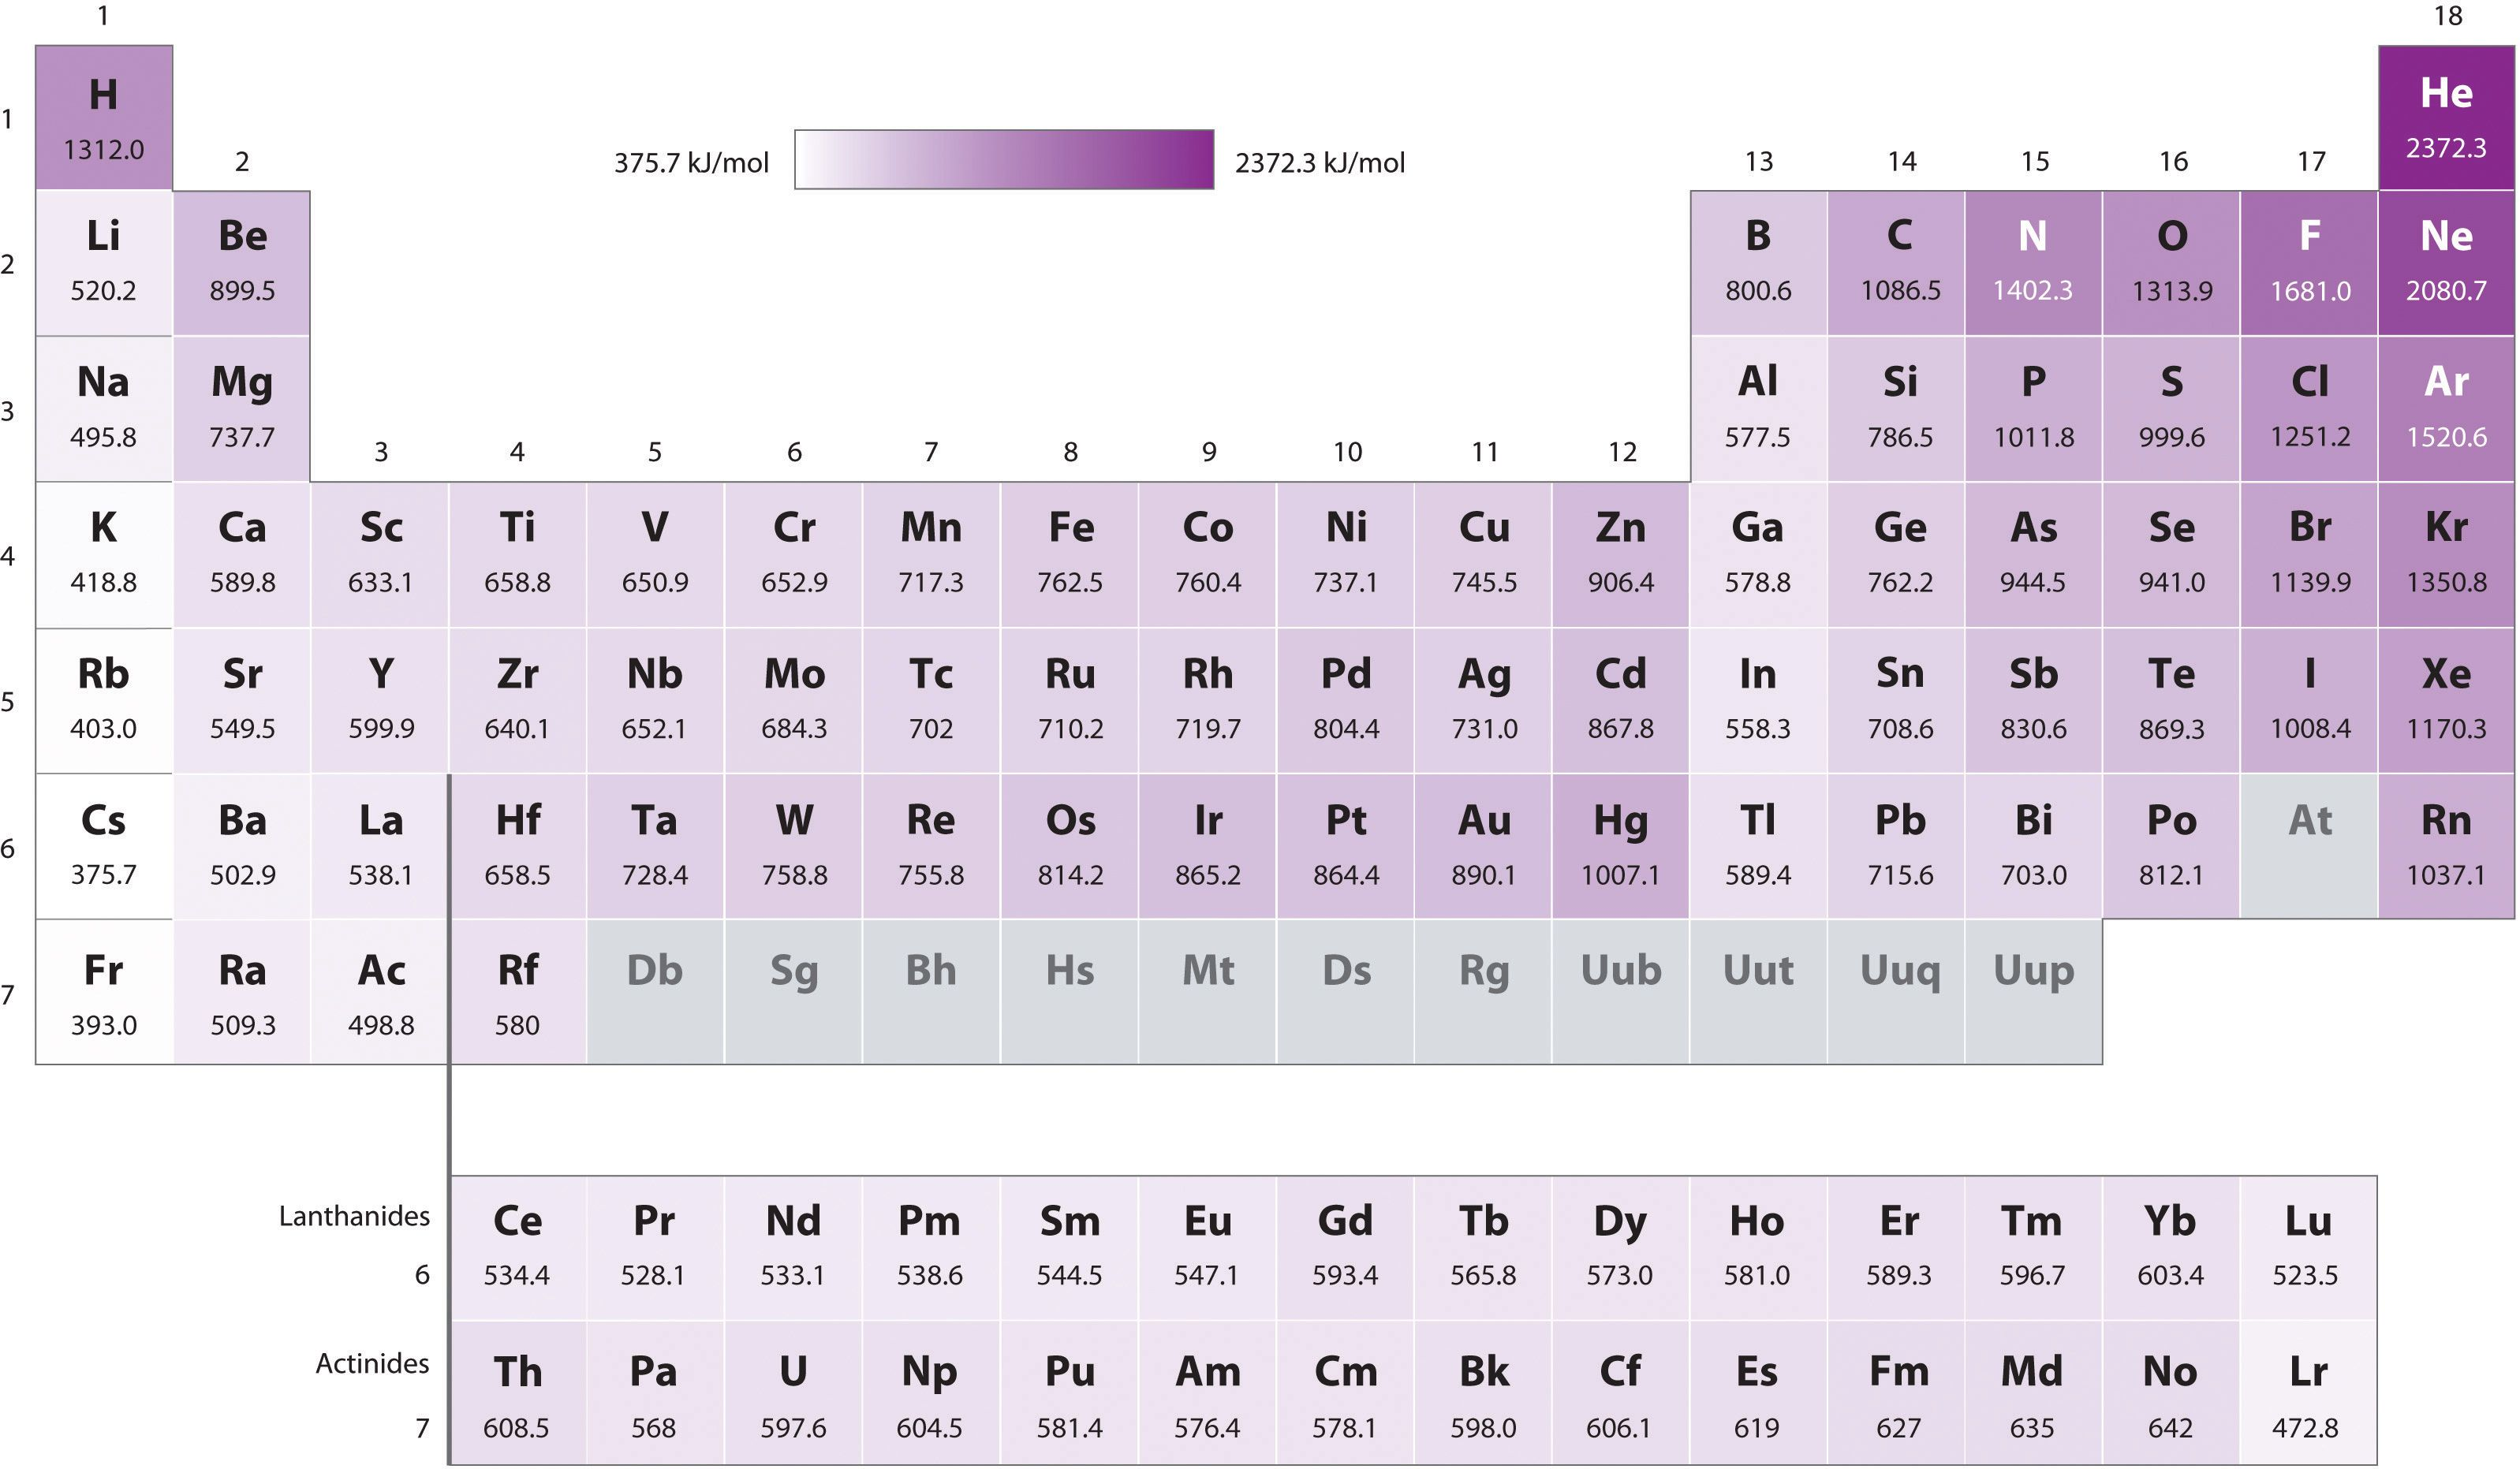 Electronegativity chart template this easytouse chart shows the ionization energy google search winterquarter urtaz Images